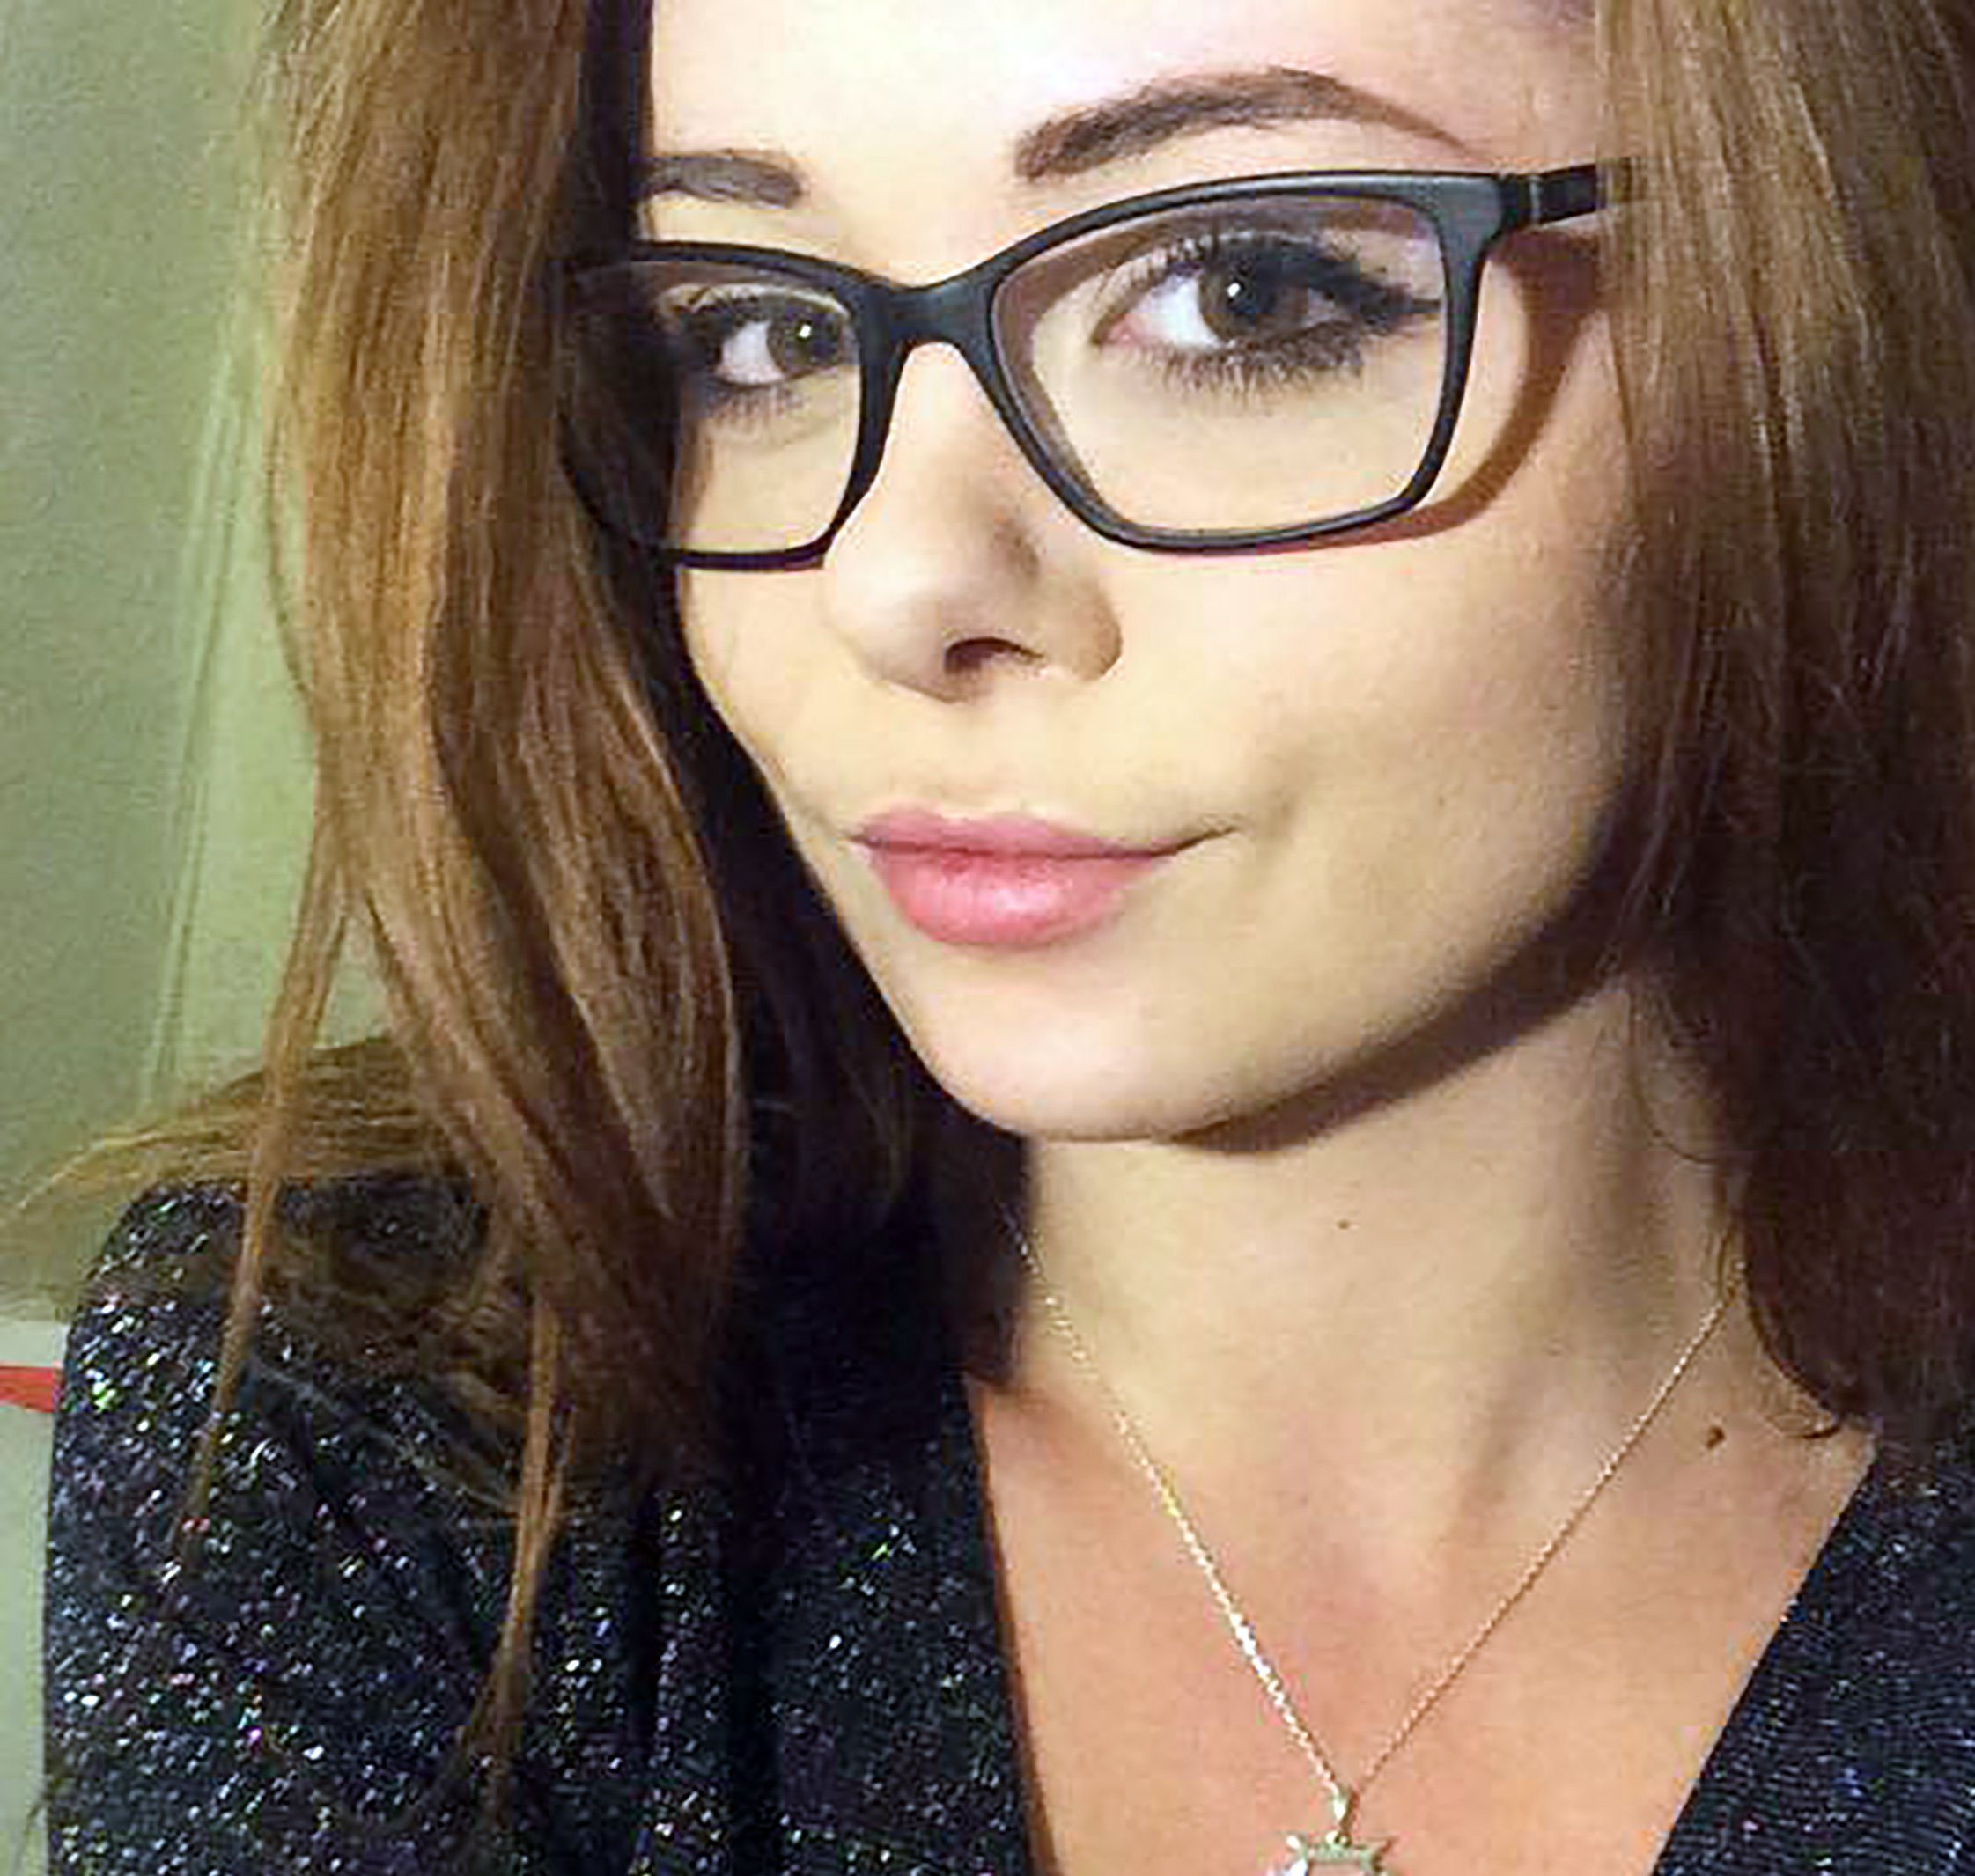 A bar manager who was strangled by her chef at their Christmas party has won her case for unfair dismissal. Molly Phillips, 24, passed out after being held around her neck by chef Nathan Webb at their festive party. Miss Phillips went to hospital to get checked for a suspected stroke - as she had no recollection of what happened. Picture is Molly Phillips WALES NEWS SERVICE